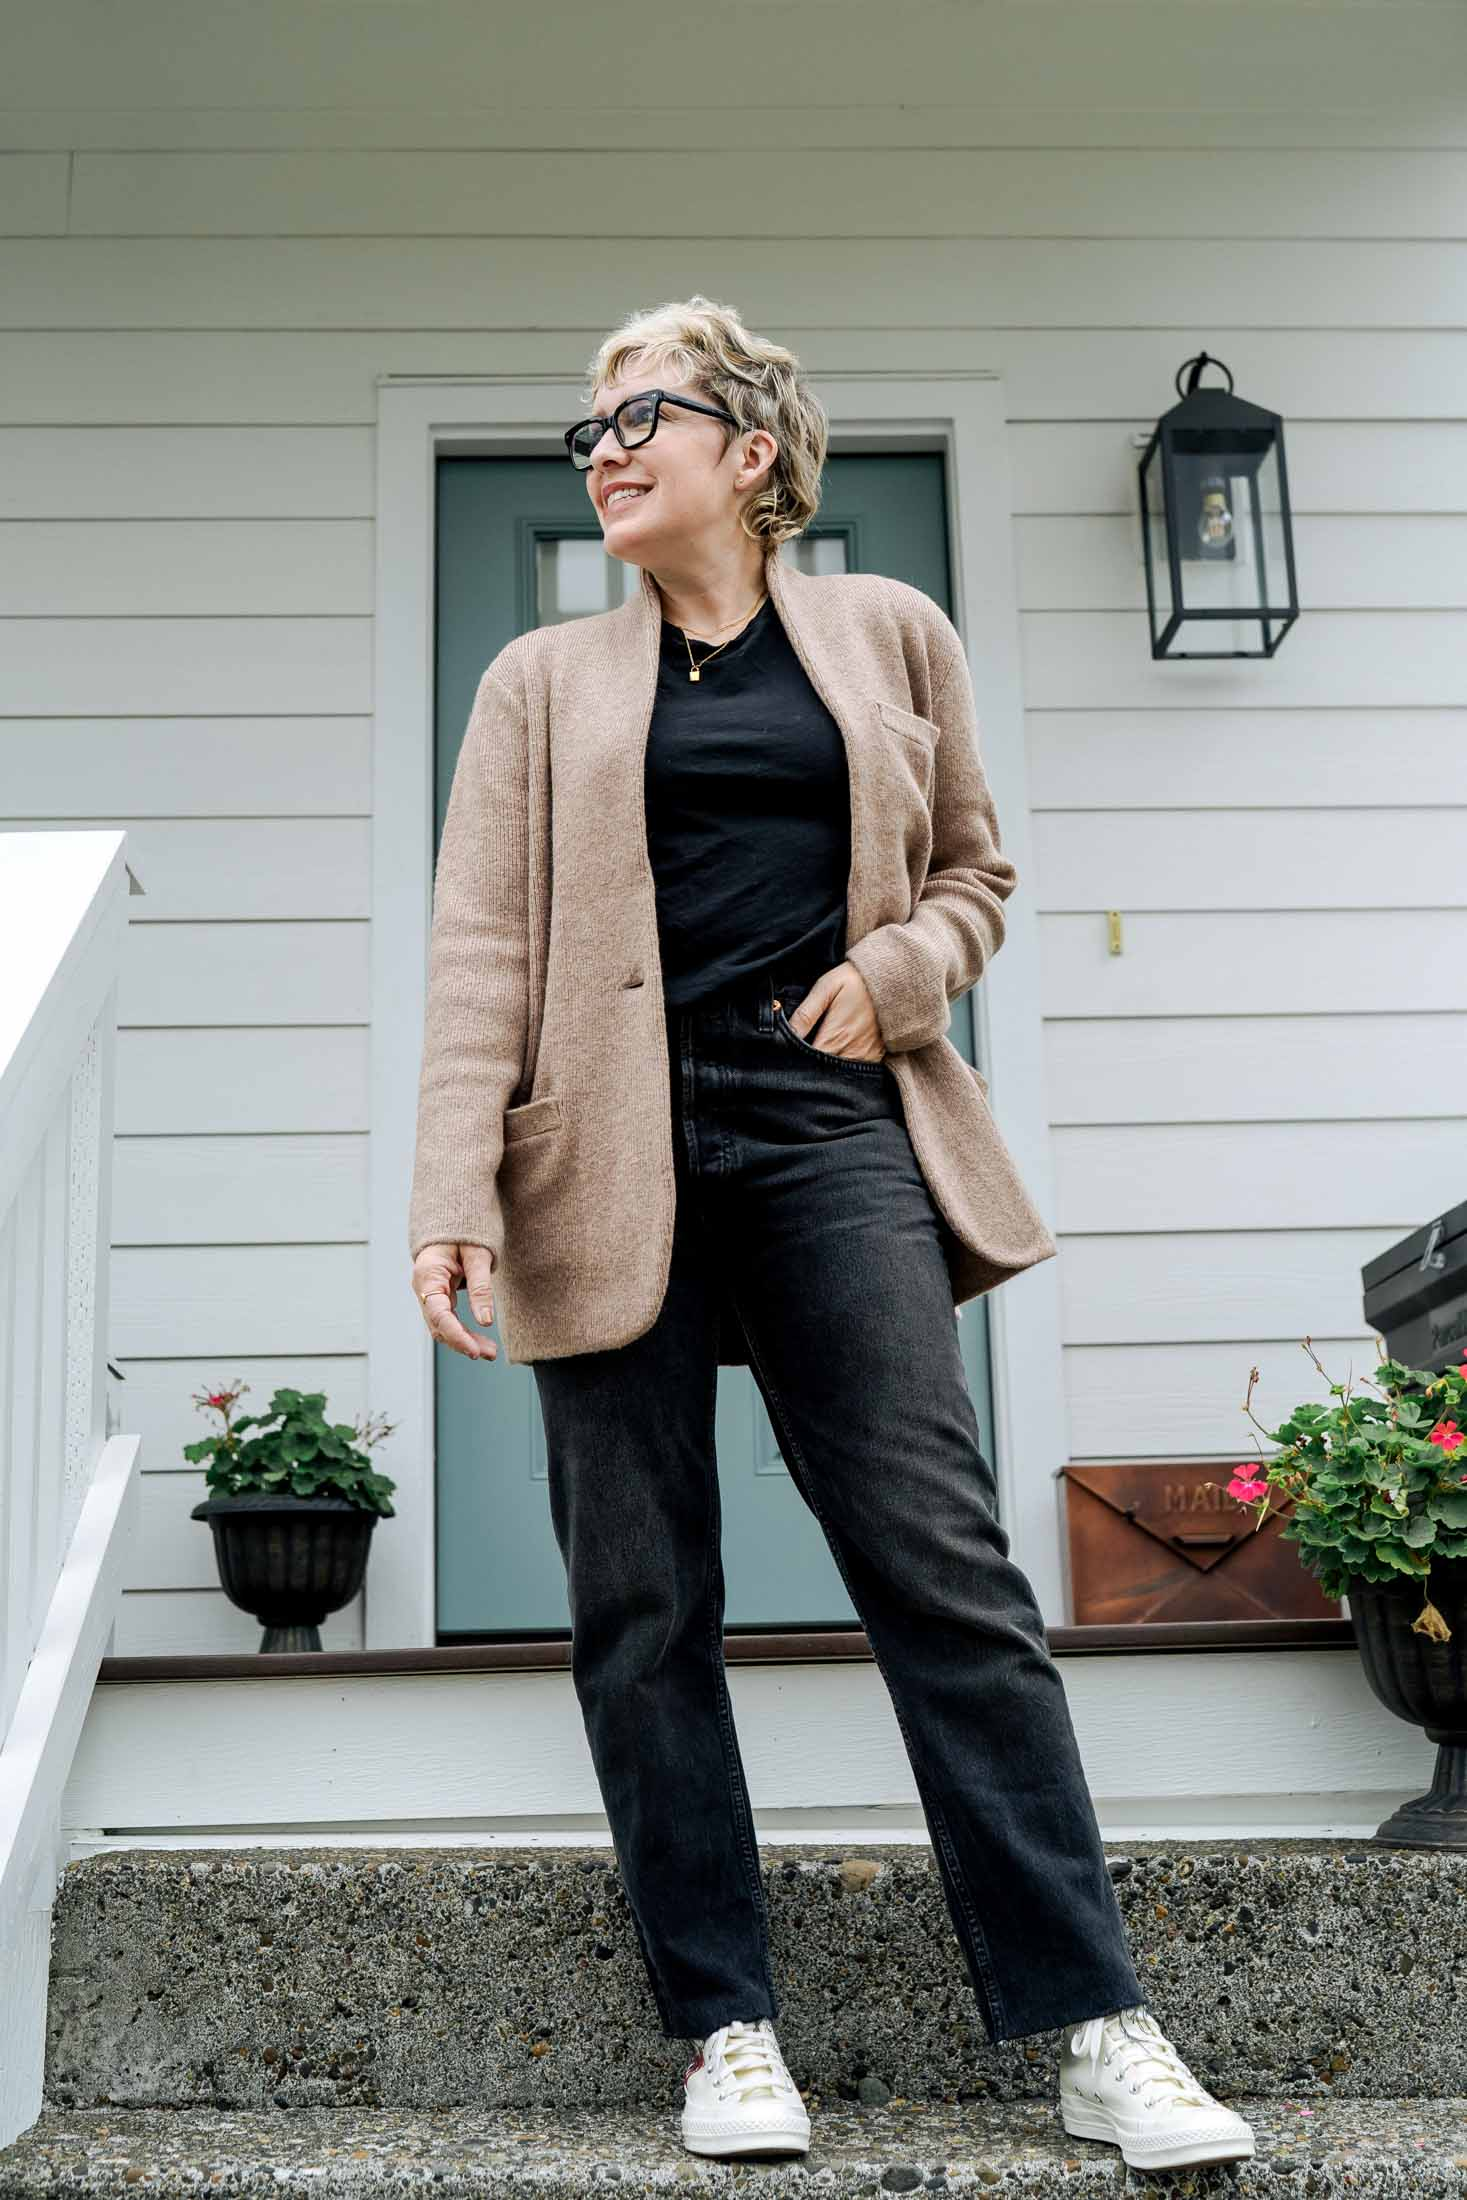 High-tops add that cool sporty vibe to literally everything. But — I do realize high-tops are sometimes a bit trickier to style than low-profile sneakers, especially on those of us with shorter frames.